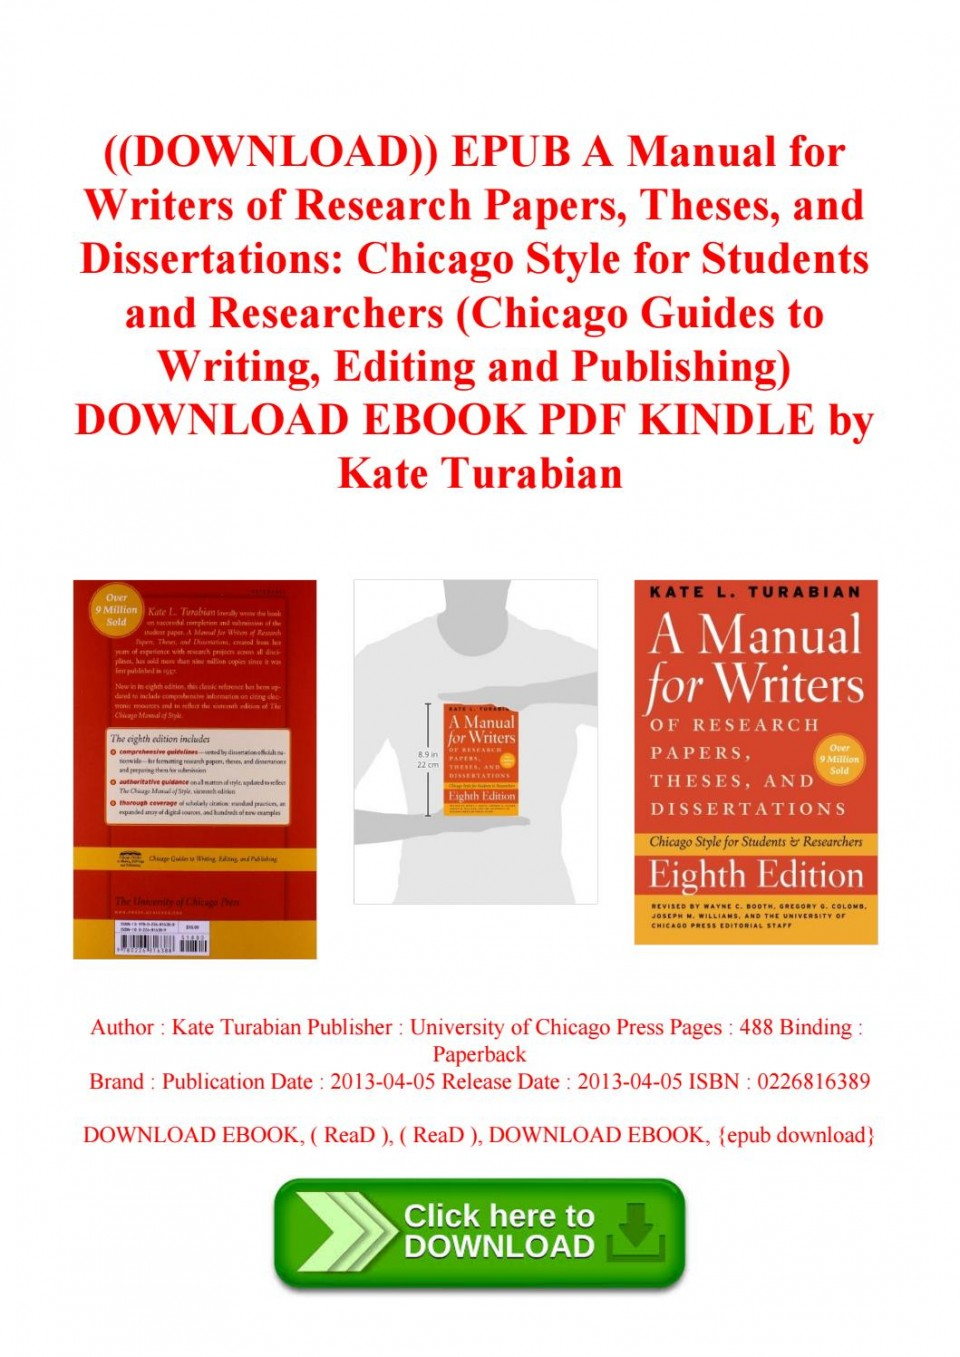 003 Page 1 Manual For Writers Of Researchs Theses And Dissertations Magnificent Research Papers A Amazon 9th Edition Pdf 8th 13 960